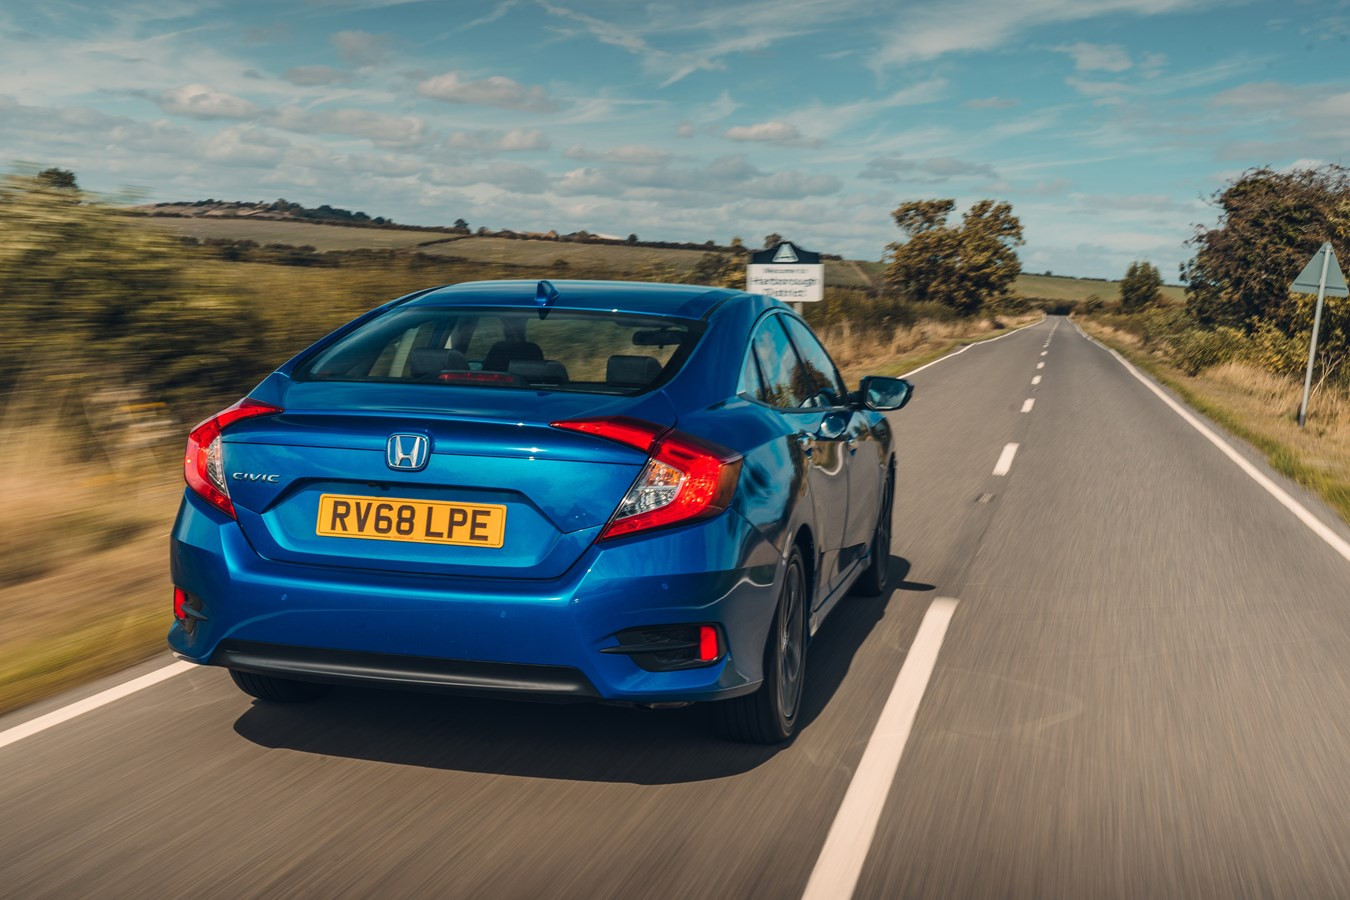 Rear view of a blue Honda Civic driving on a road